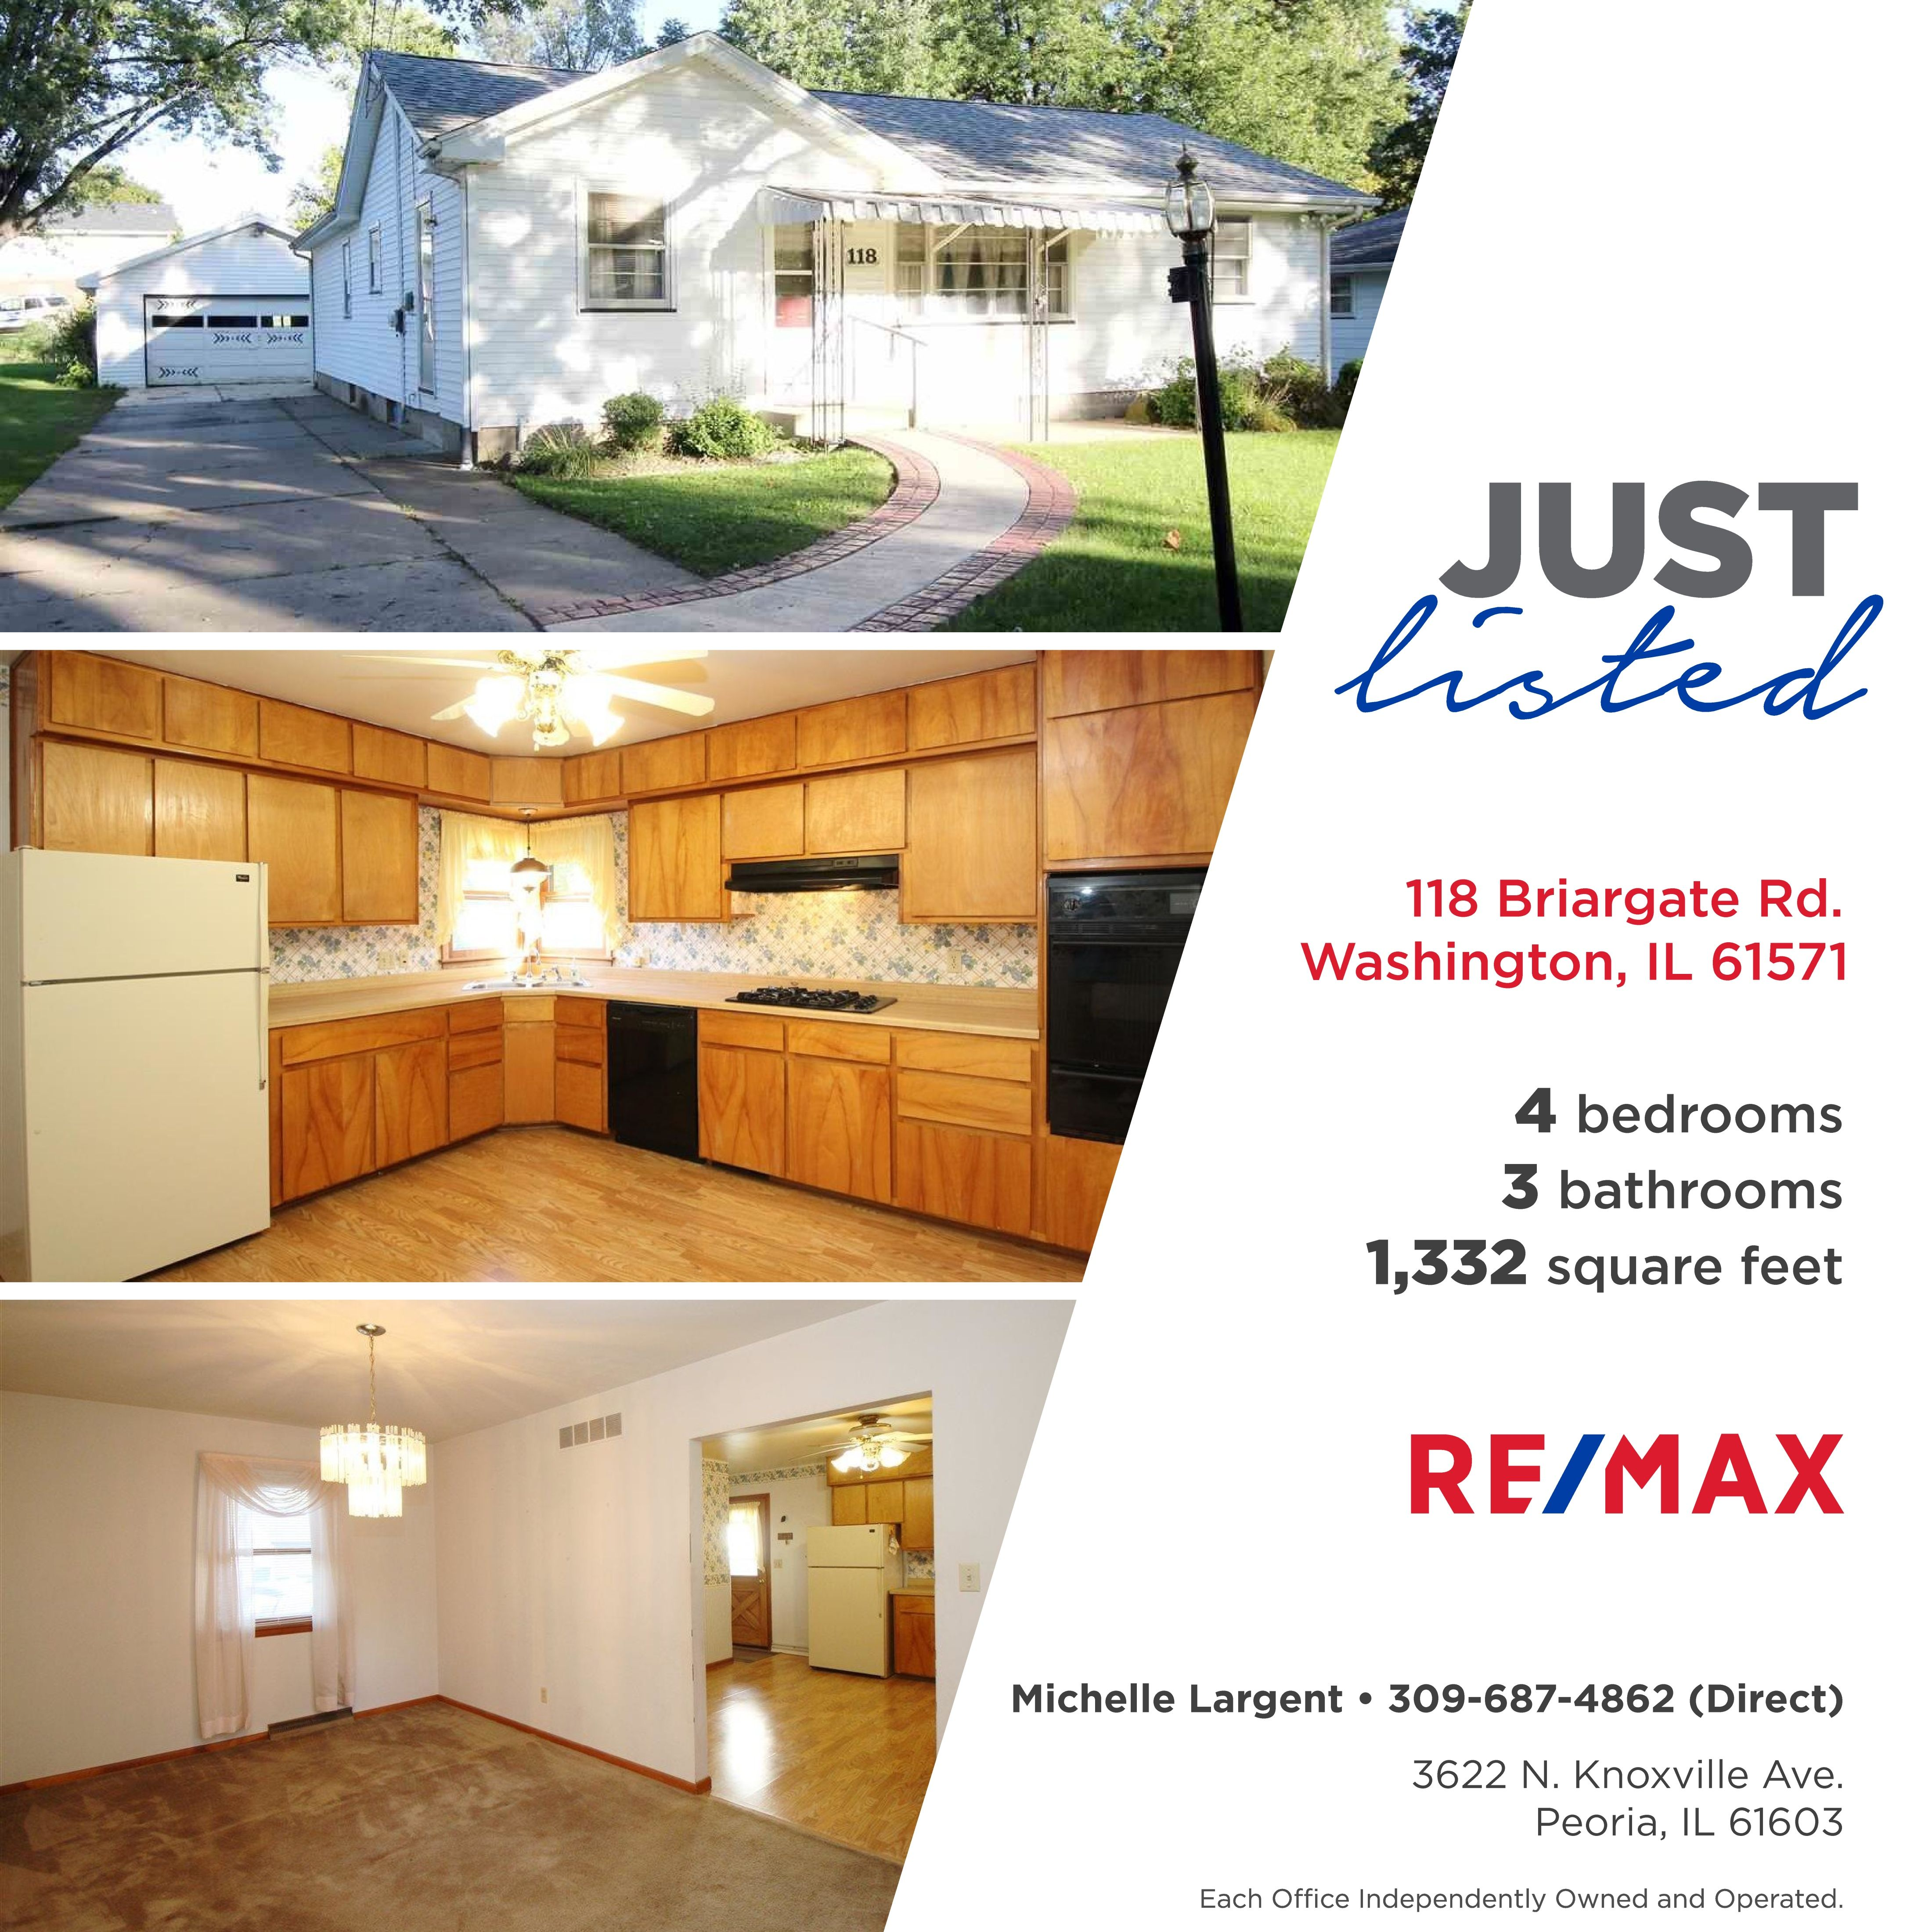 Just Listed 109 900 118 Briargate Rd Washington Il Great